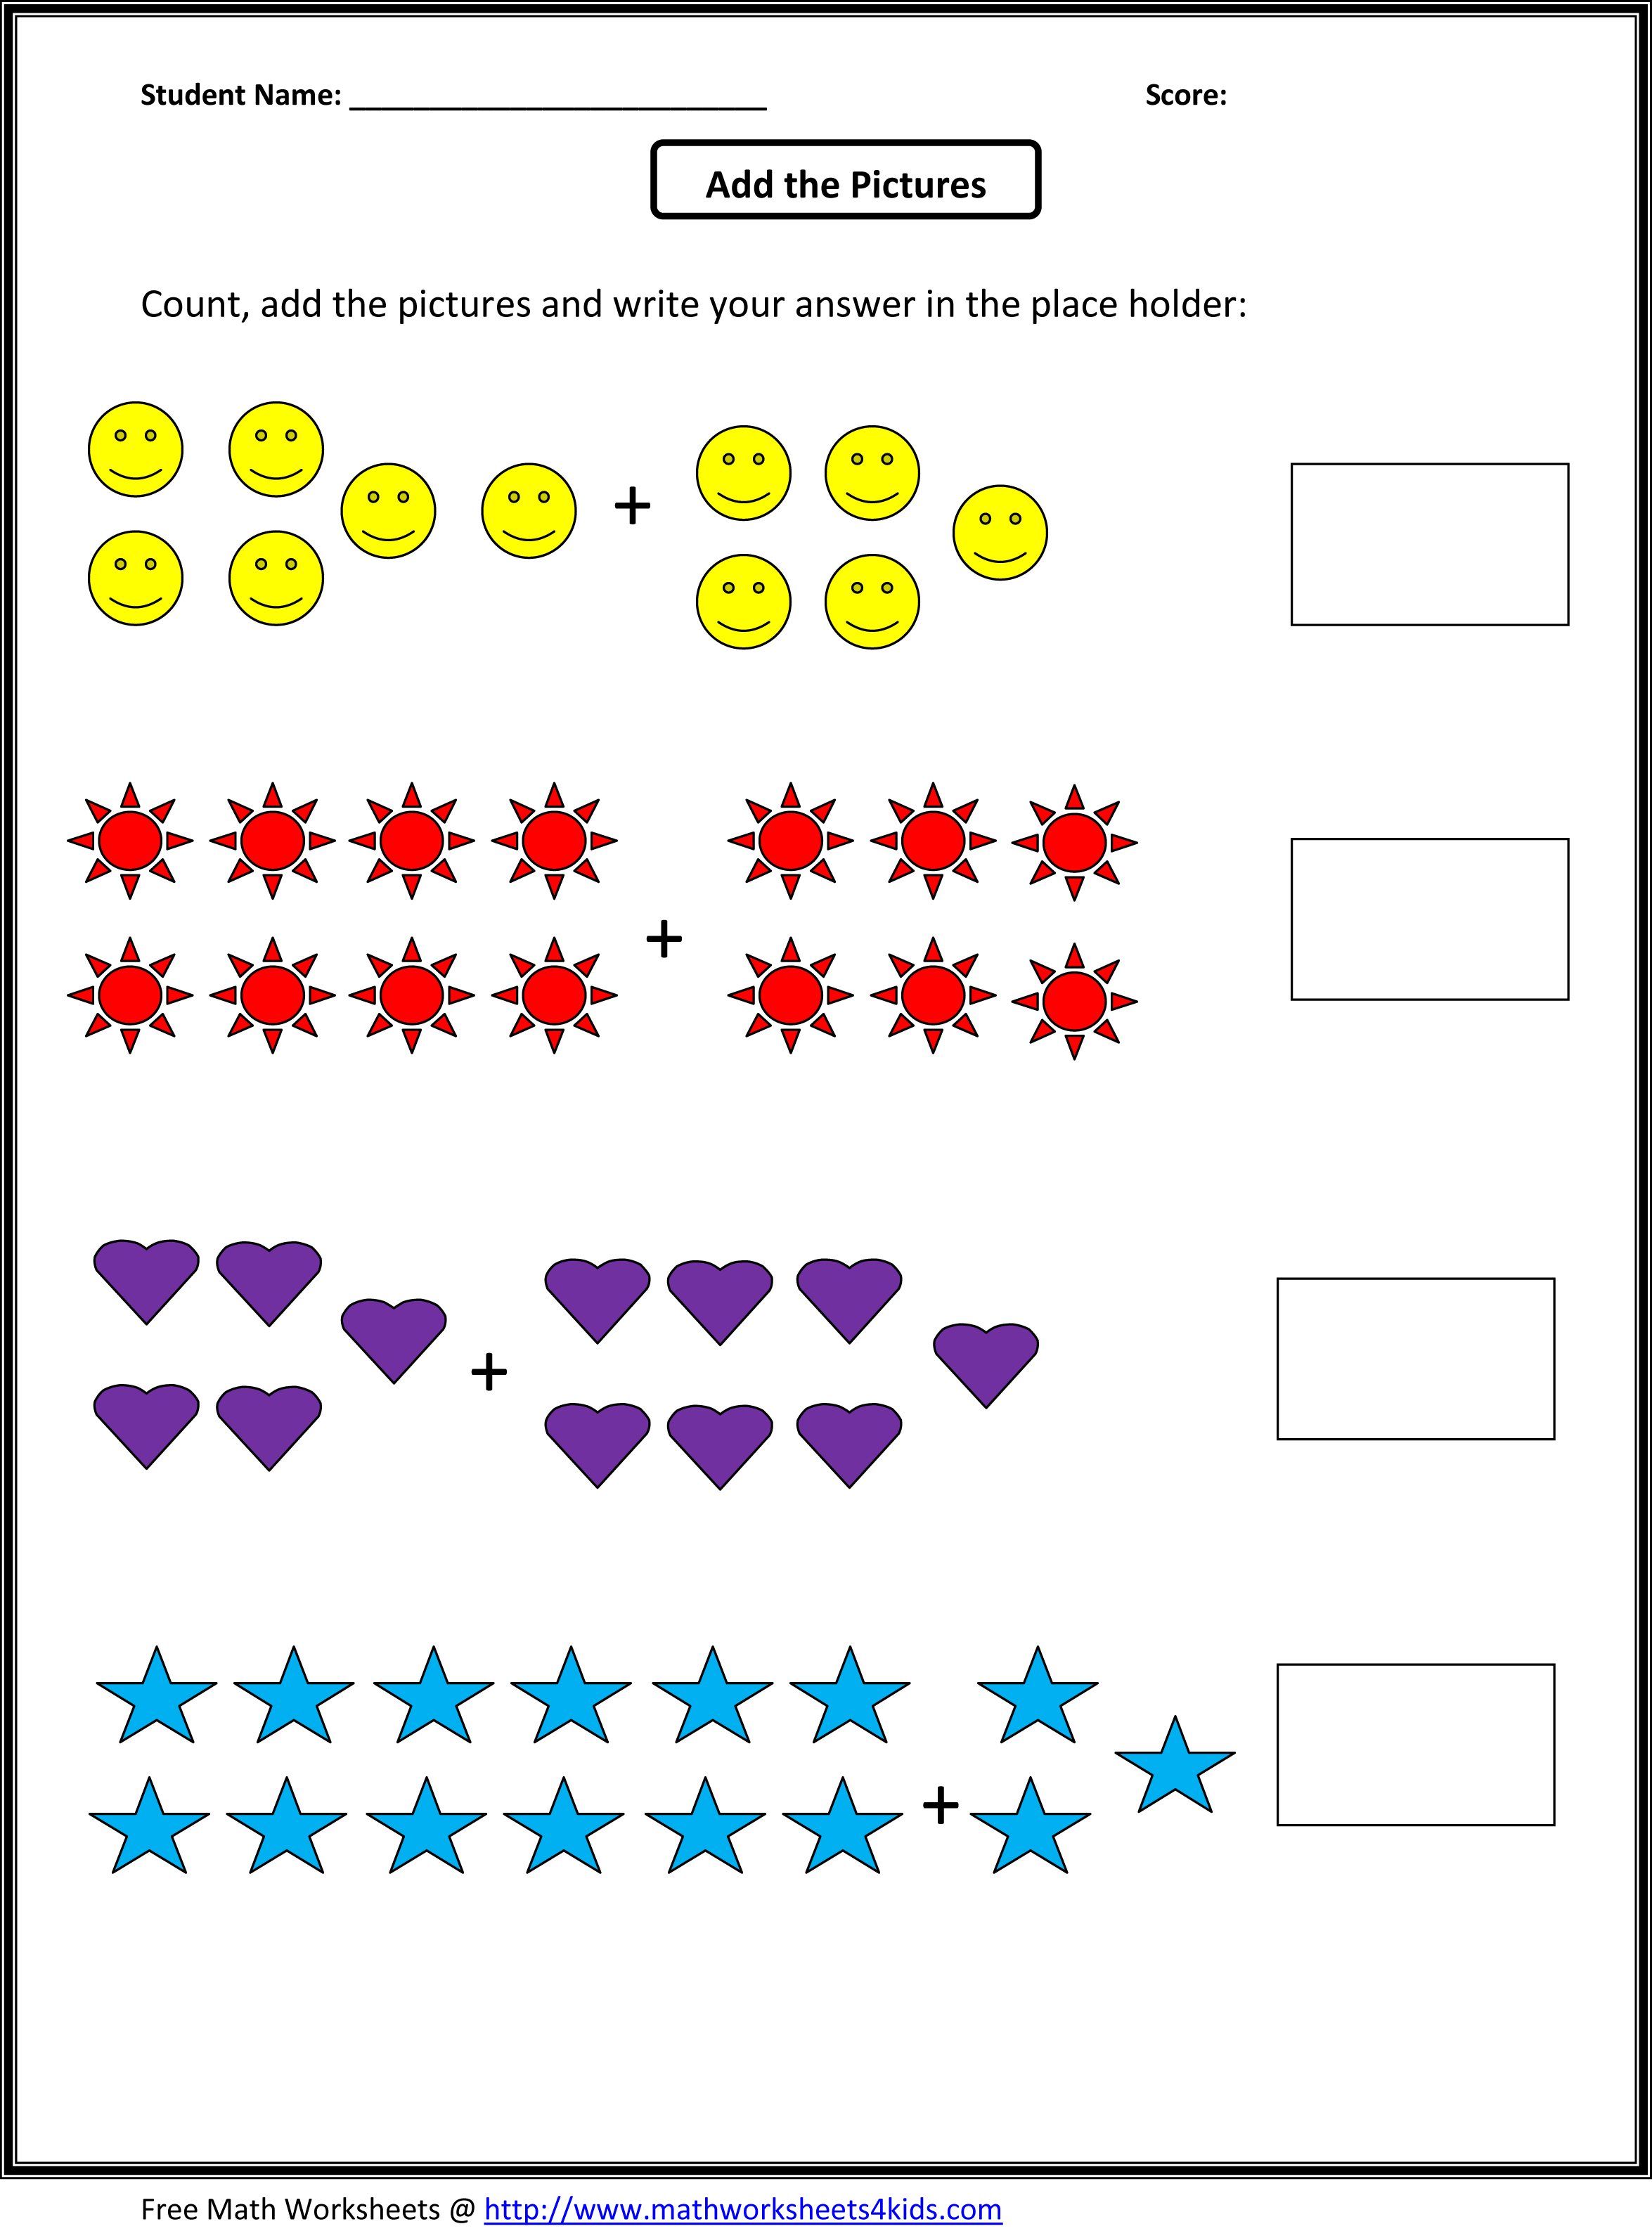 Weirdmailus  Outstanding Grade  Maths Worksheet  Reocurent With Magnificent Math Worksheets For St Grade Free  Reocurent With Cute Quadratic Equations By Factoring Worksheet Also Finding Equivalent Fractions Worksheets Th Grade In Addition Main Idea Worksheets Th Grade And Armor Of God Worksheet As Well As Loop Through Worksheets Vba Additionally Holt Physical Science Worksheets From Reocurentcom With Weirdmailus  Magnificent Grade  Maths Worksheet  Reocurent With Cute Math Worksheets For St Grade Free  Reocurent And Outstanding Quadratic Equations By Factoring Worksheet Also Finding Equivalent Fractions Worksheets Th Grade In Addition Main Idea Worksheets Th Grade From Reocurentcom